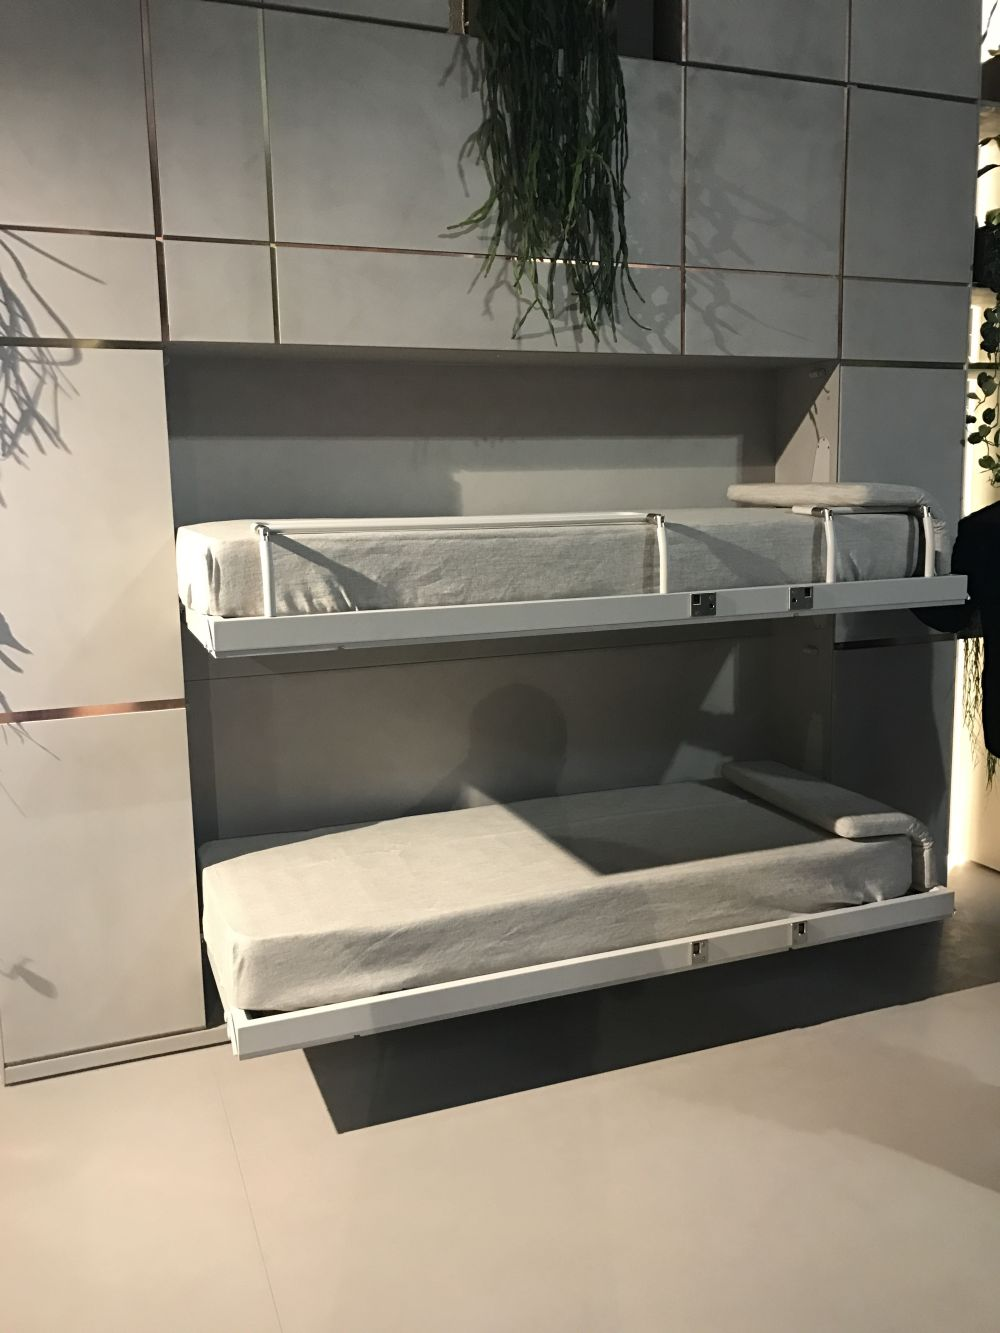 with the habitat in motion series featured at salone del mobile in milan clei introduced a movable wall unit which allows a space to serve as a living room